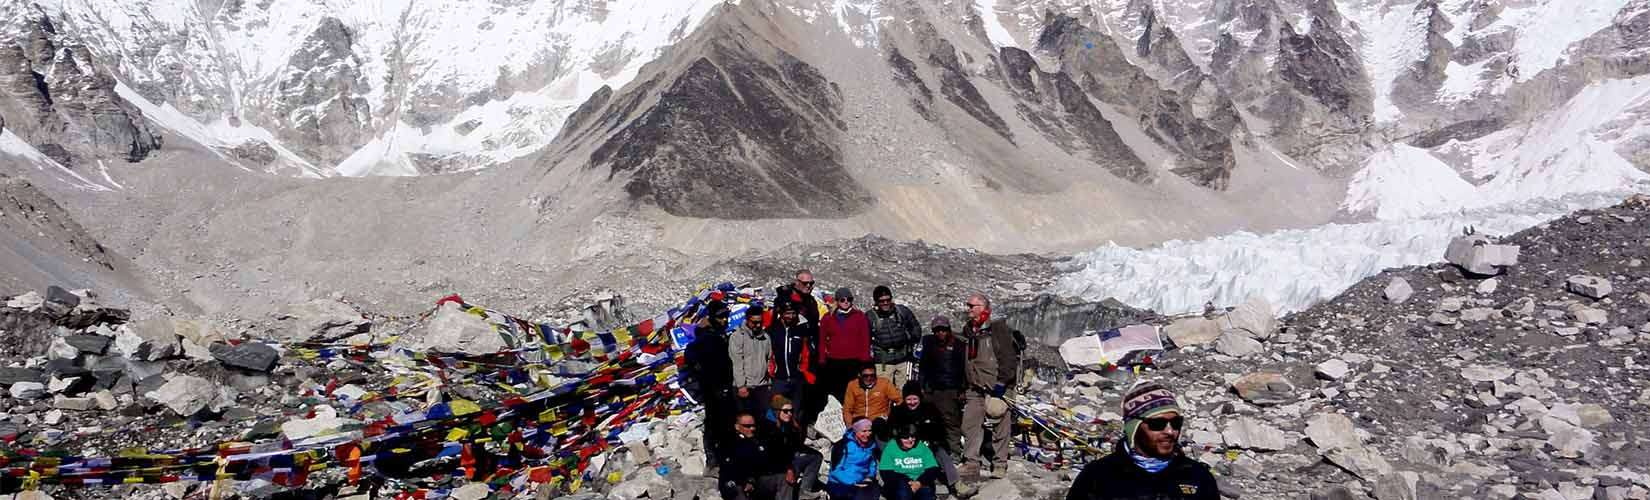 Mount Everest Base Camp Weather